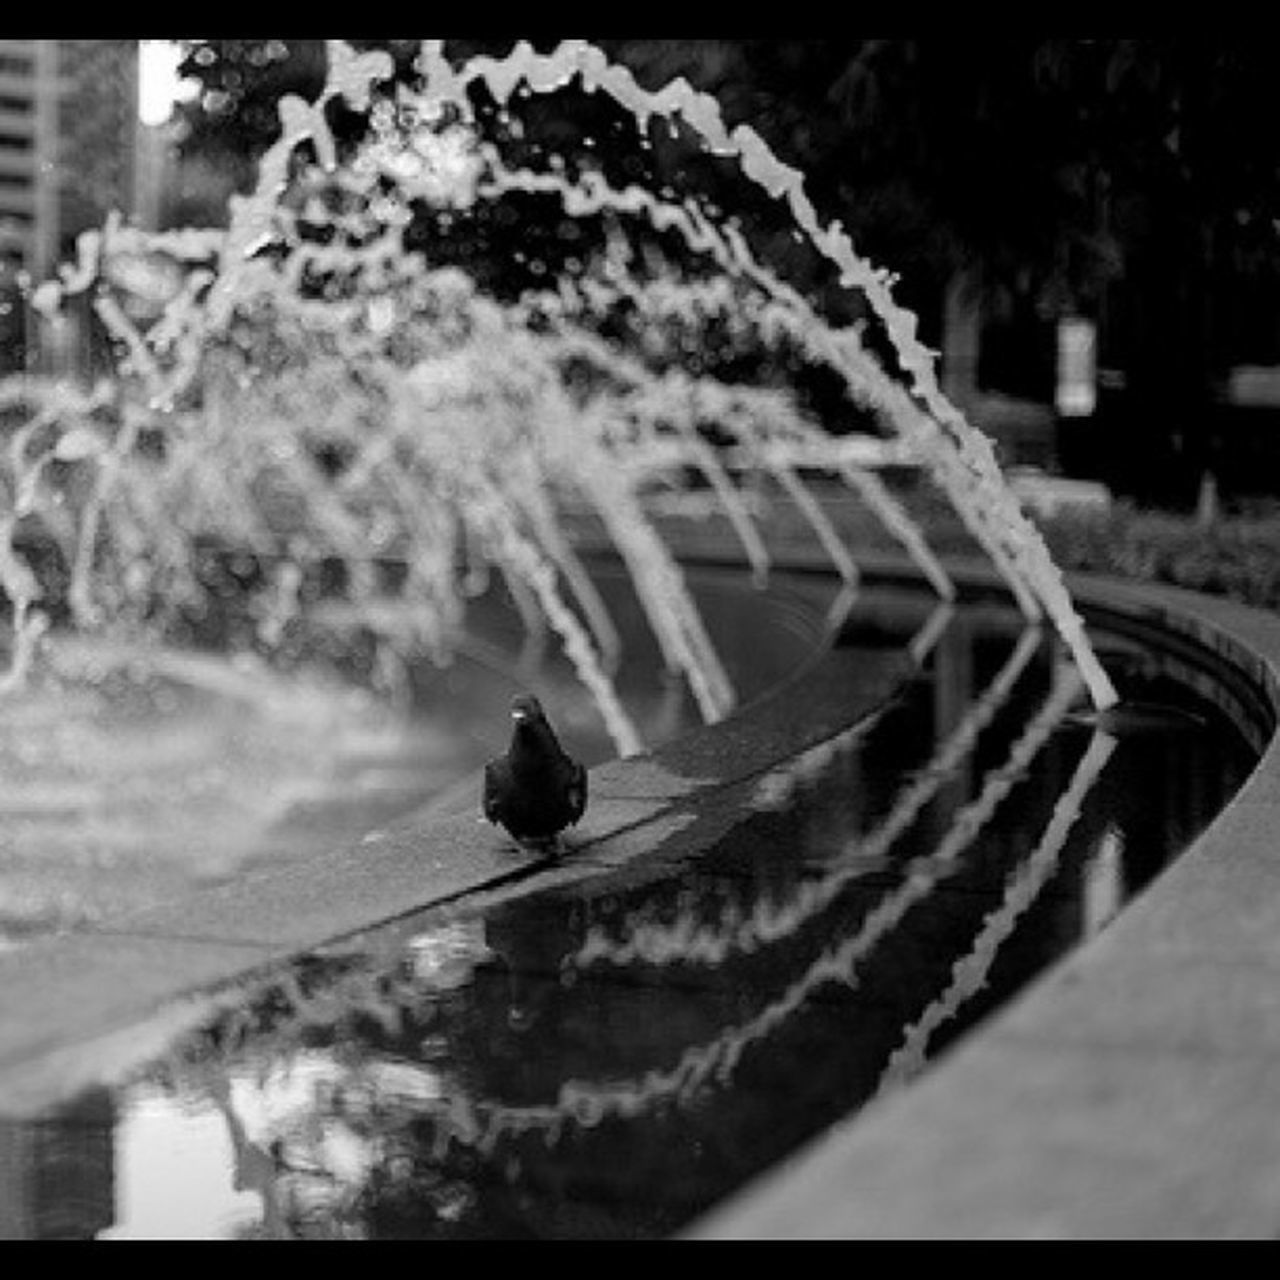 #nyc #manhattan #newyork #newyorkcity #pigeon #columbus #circle #columbuscircle #fountain #water #splash #bird #putabirdonit #bw #blackandwhite #blackwhite #dslr #canon #5d Circle Columbus Splash Blackwhite Bw DSLR Manhattan NYC Newyork Water Pigeon Putabirdonit Blackandwhite Newyorkcity Bird 5d Fountain Columbuscircle Canon